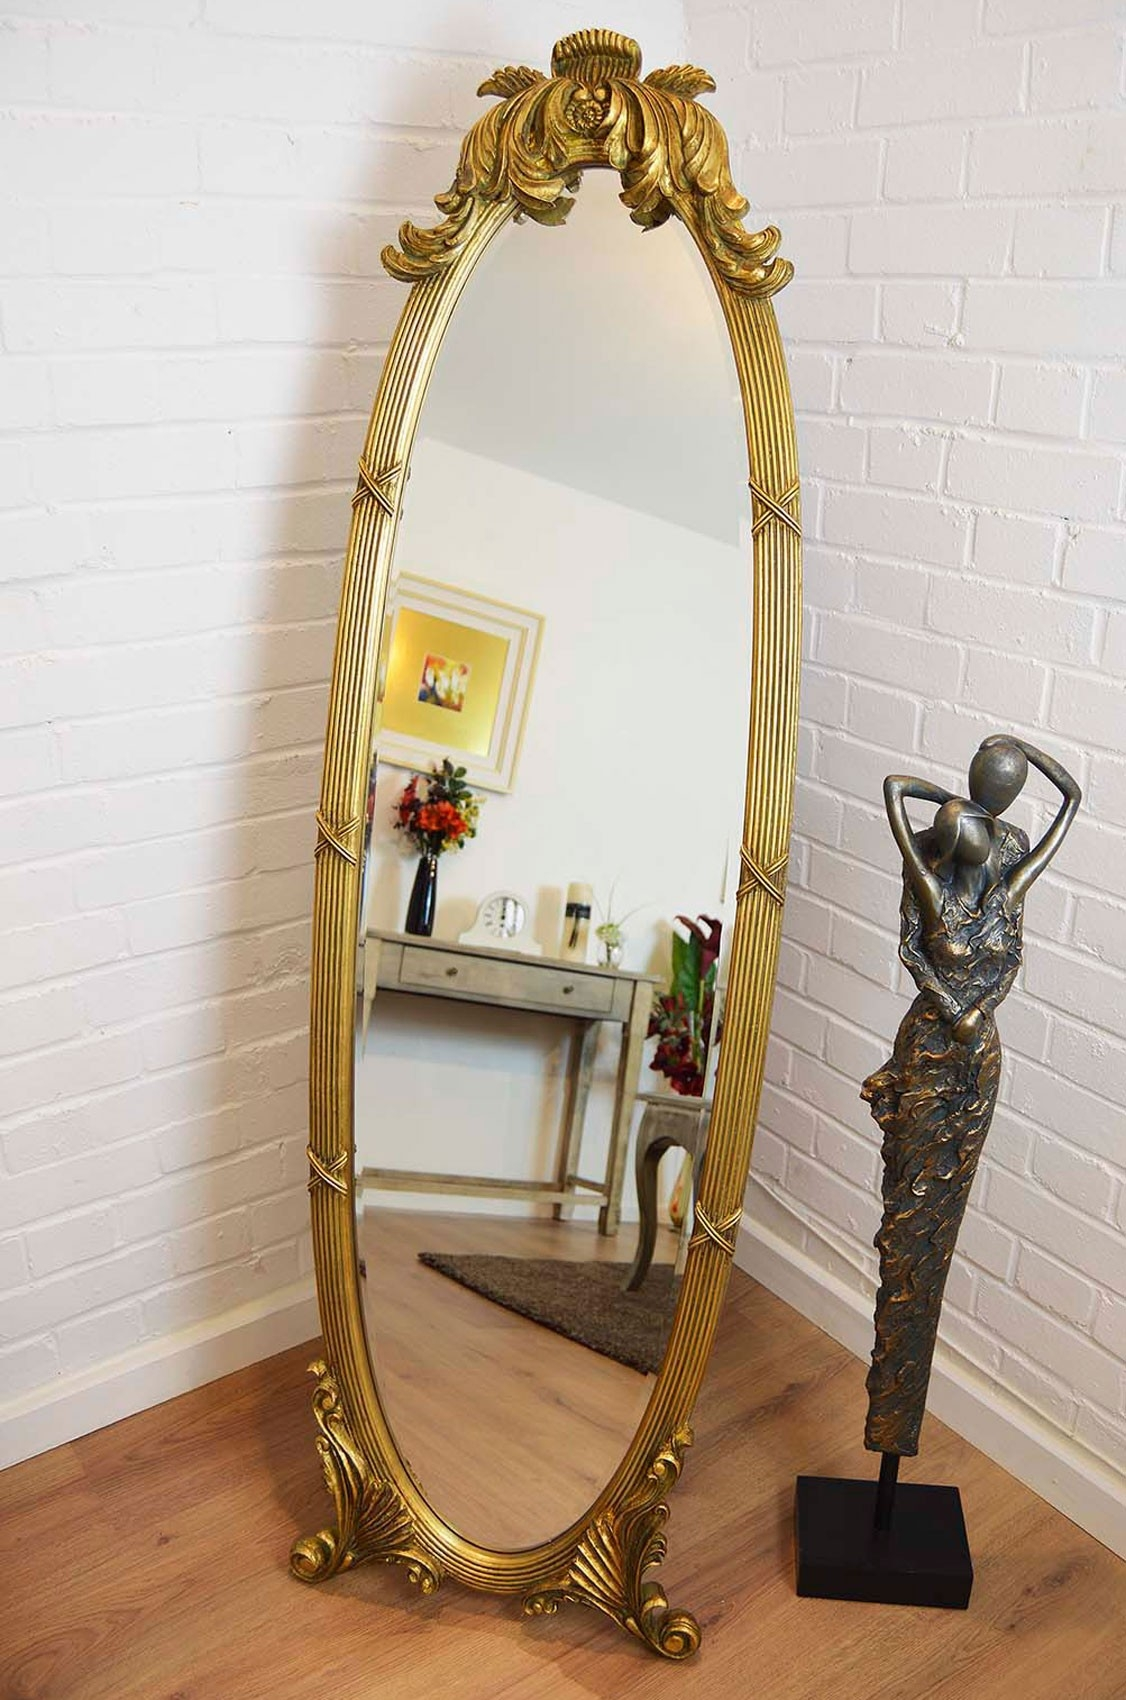 Large Antique Ornate Gold Oval Freestandingcheval Mirror 5ft5 X In Free Standing Antique Mirror (Photo 12 of 15)